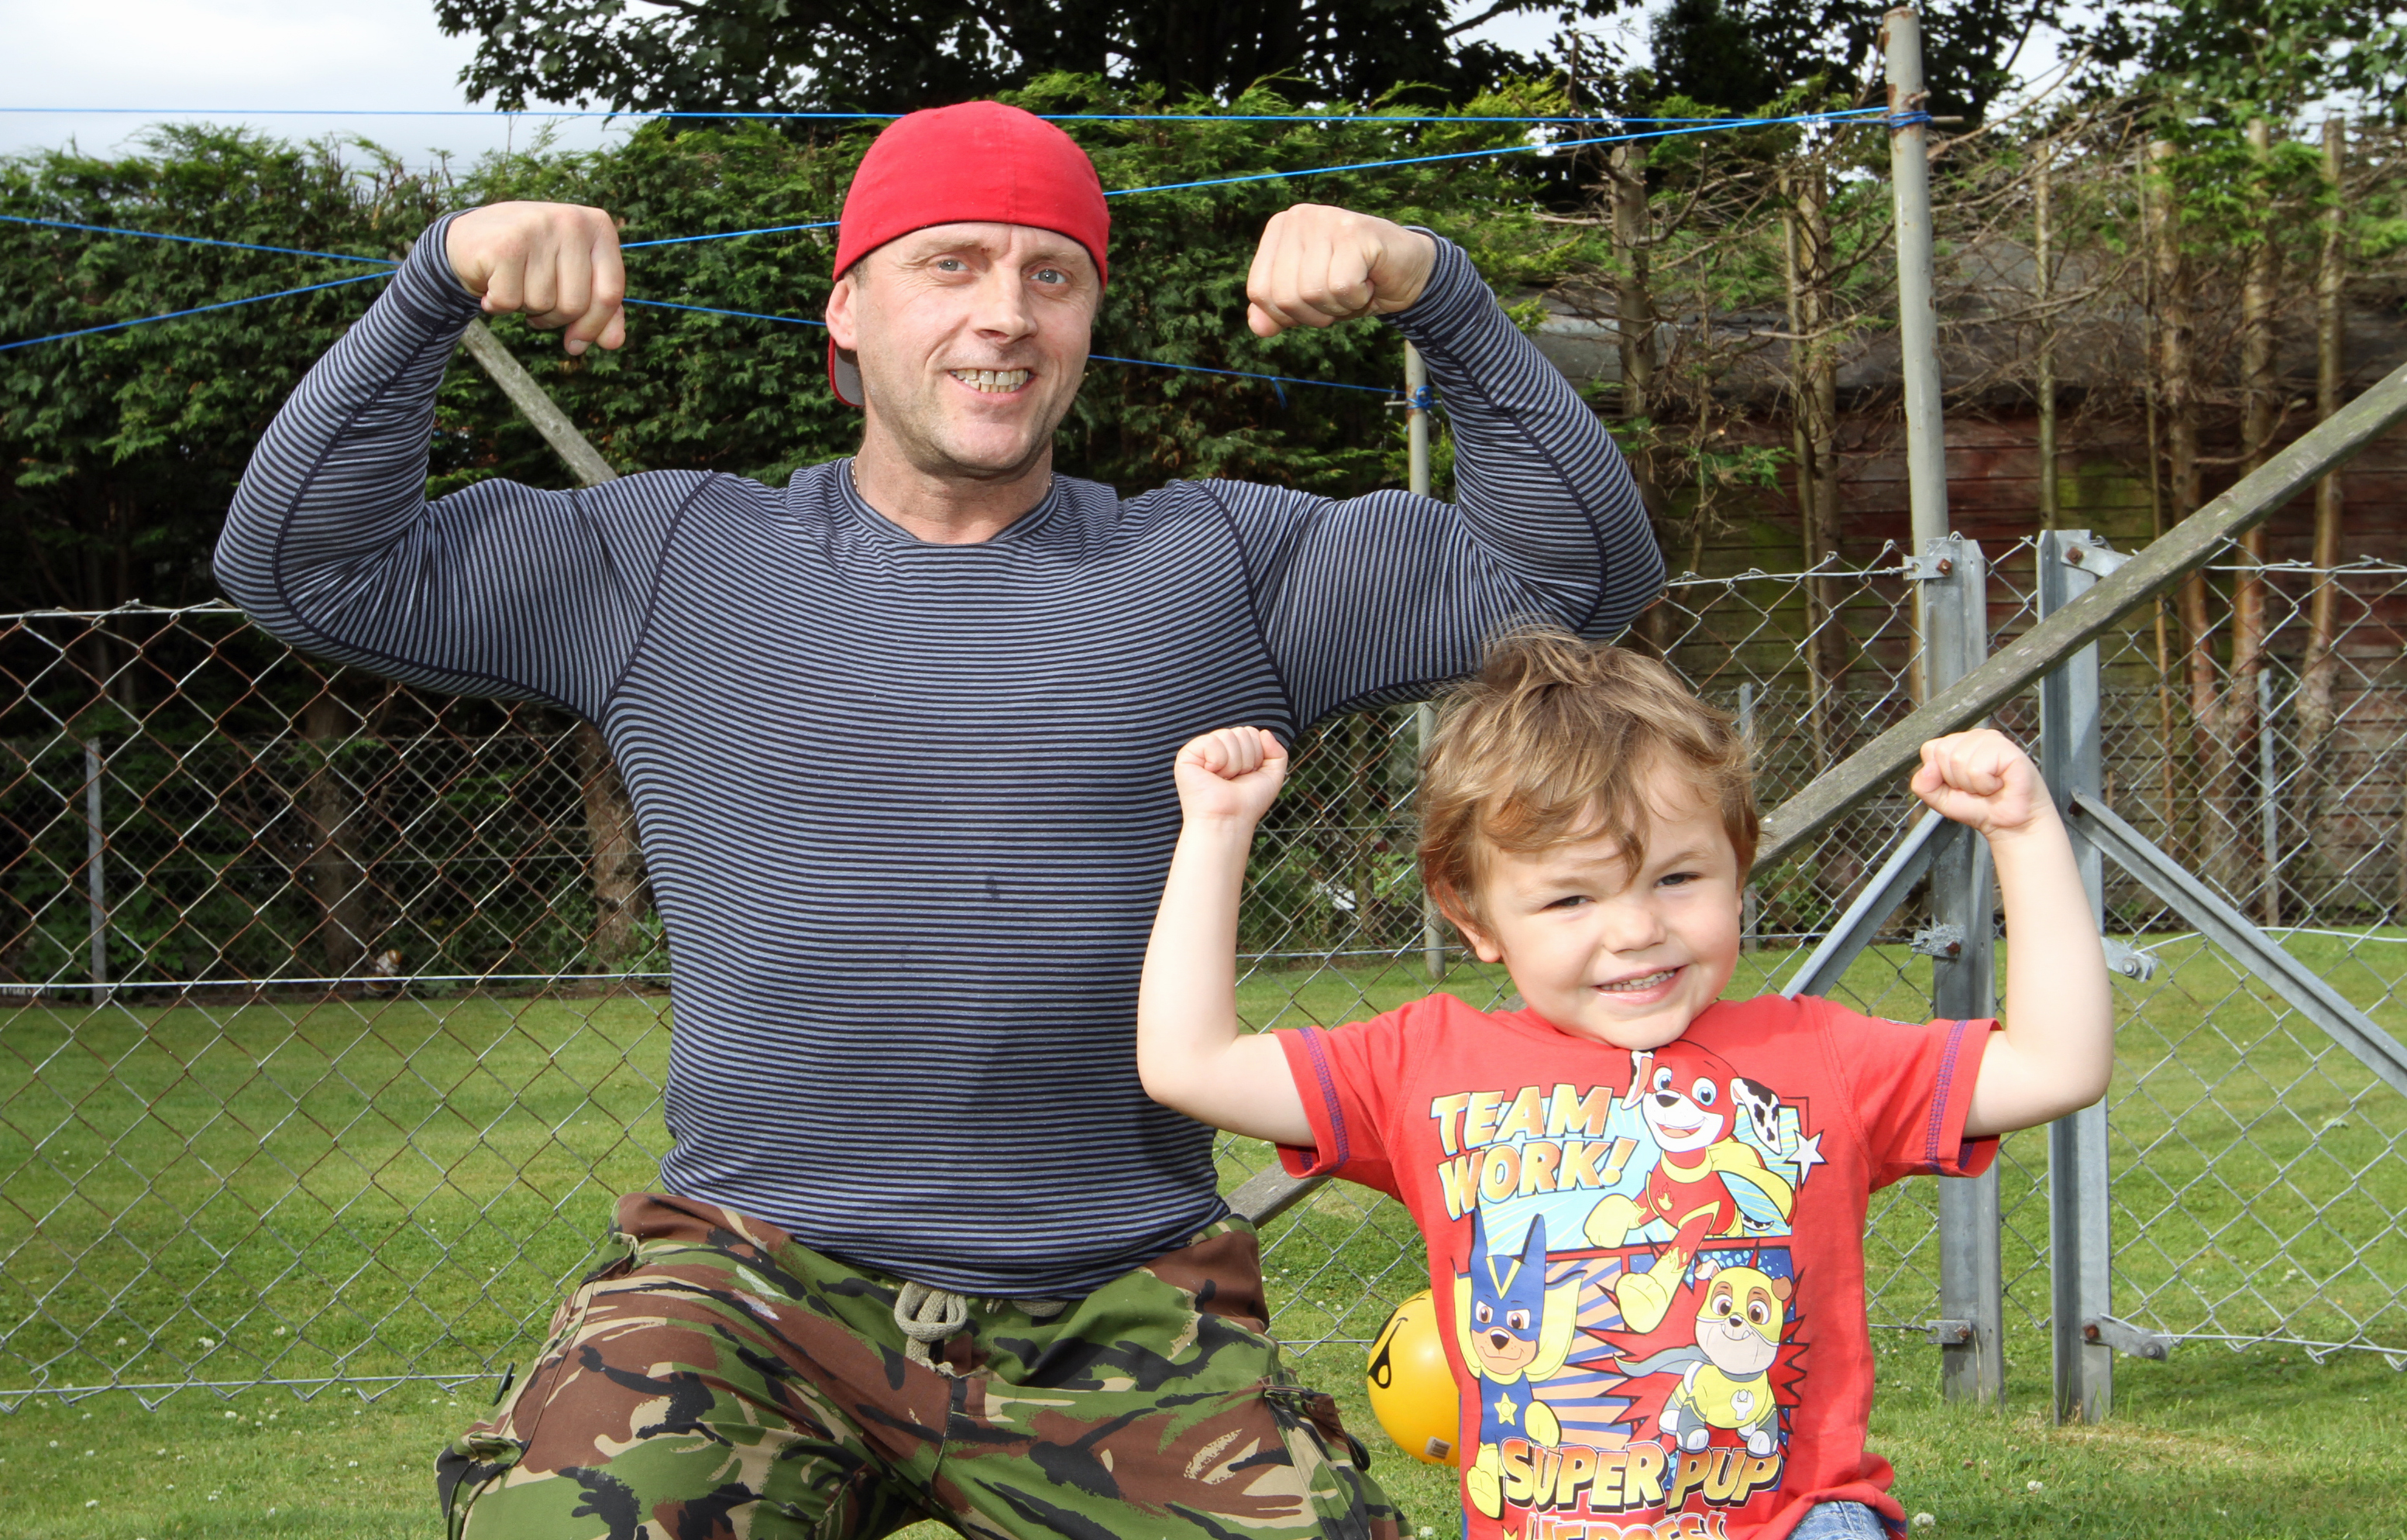 Grant Coutts with son, Grant junior.